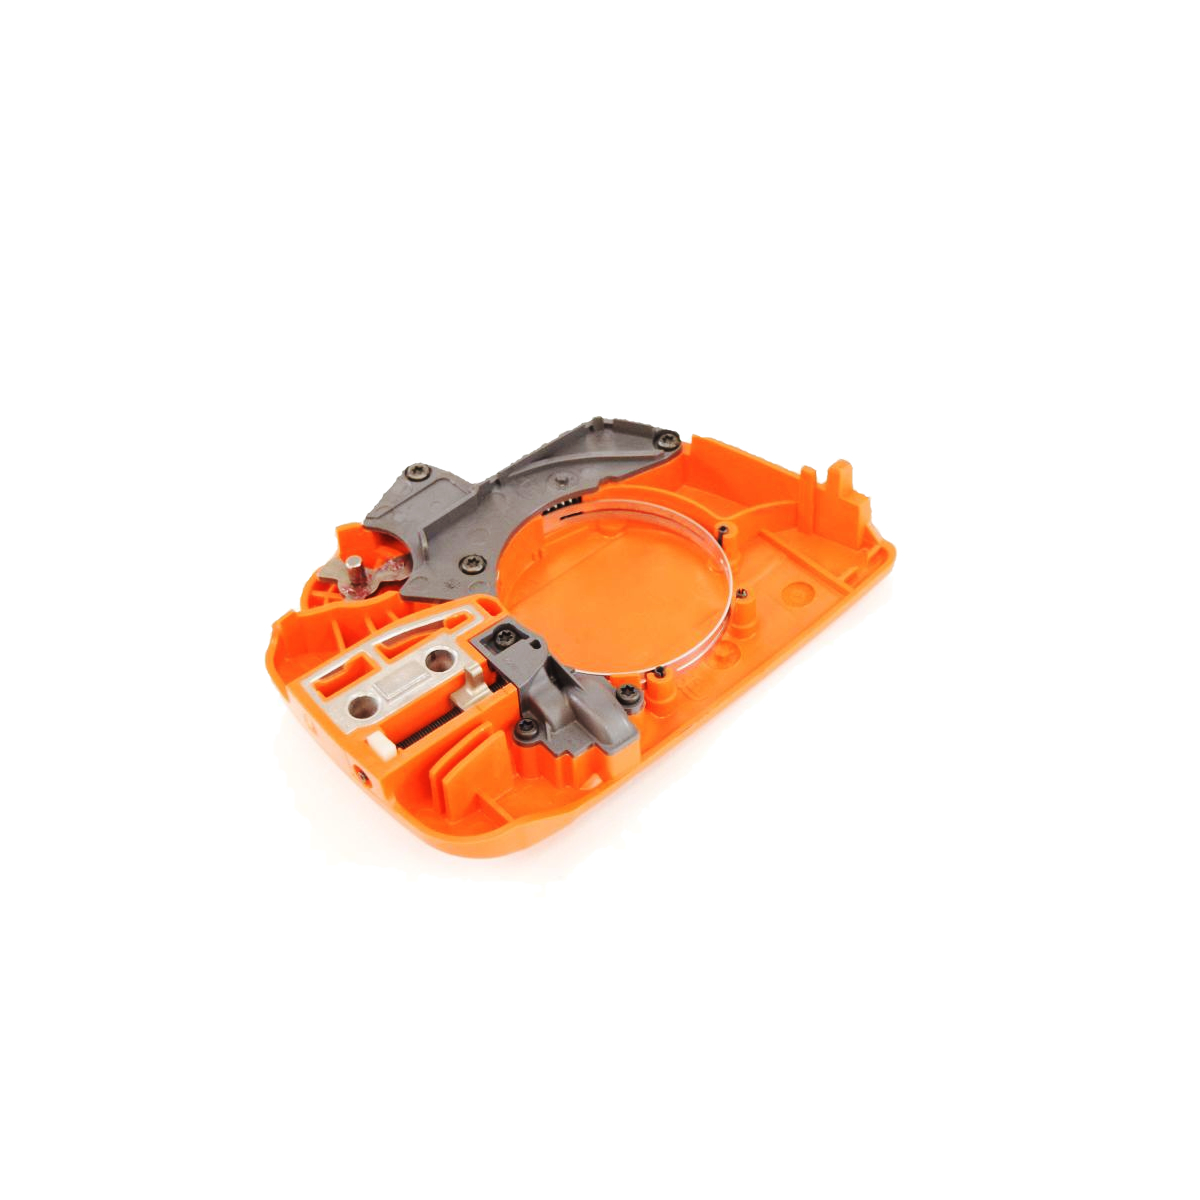 Husqvarna Chainbrake Assembly Orange 525611401